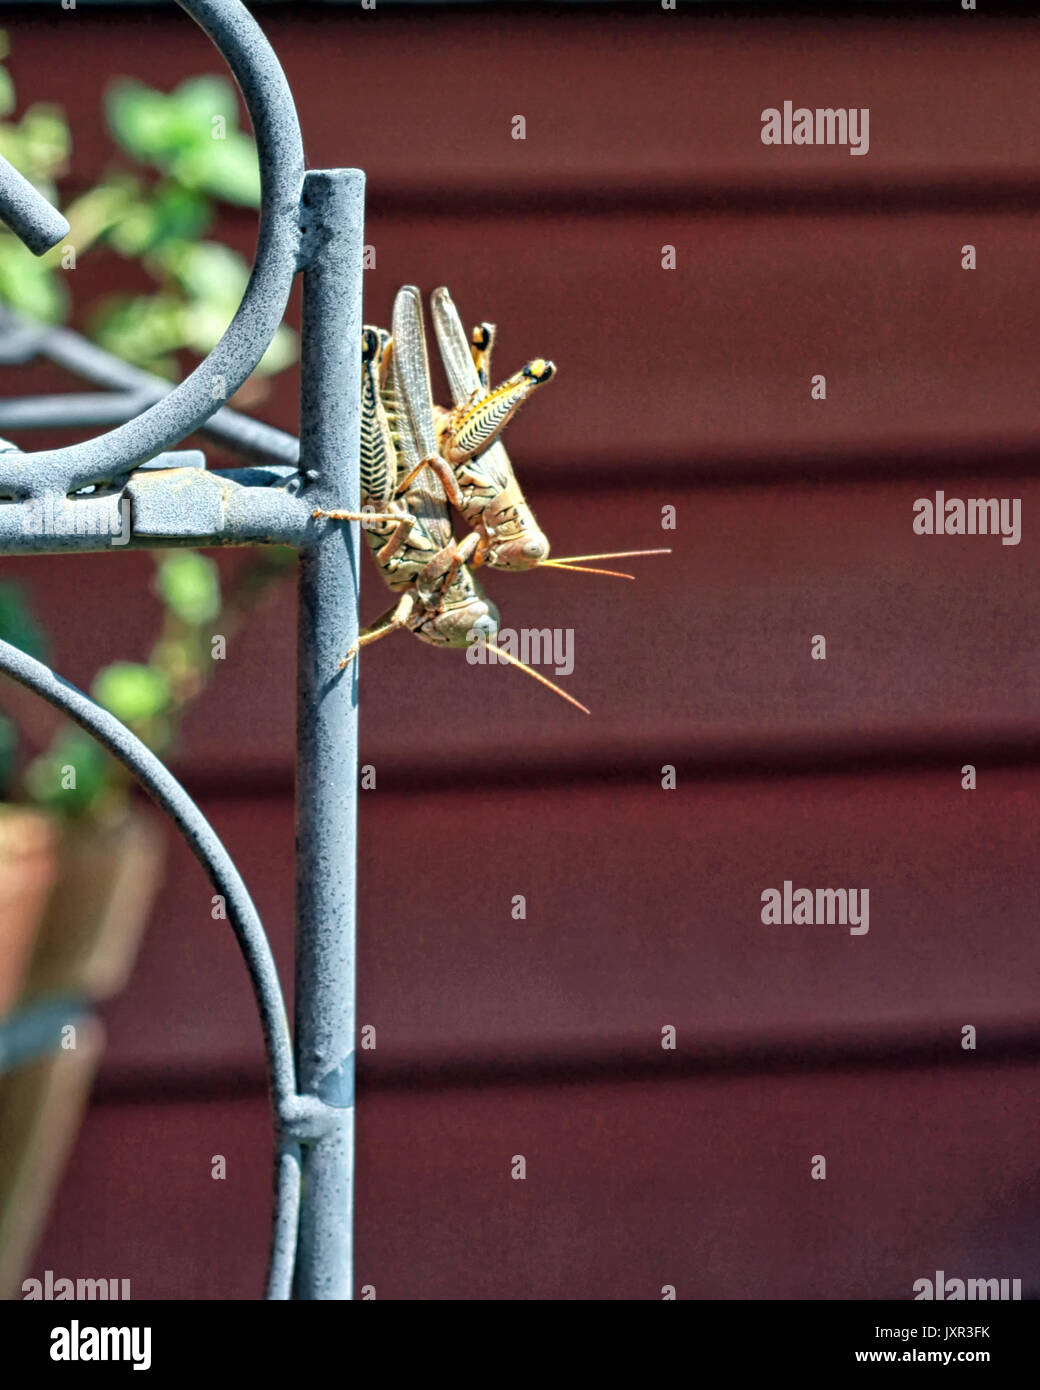 A male and female Differential Grasshopper are mating on a garden trellis. - Stock Image